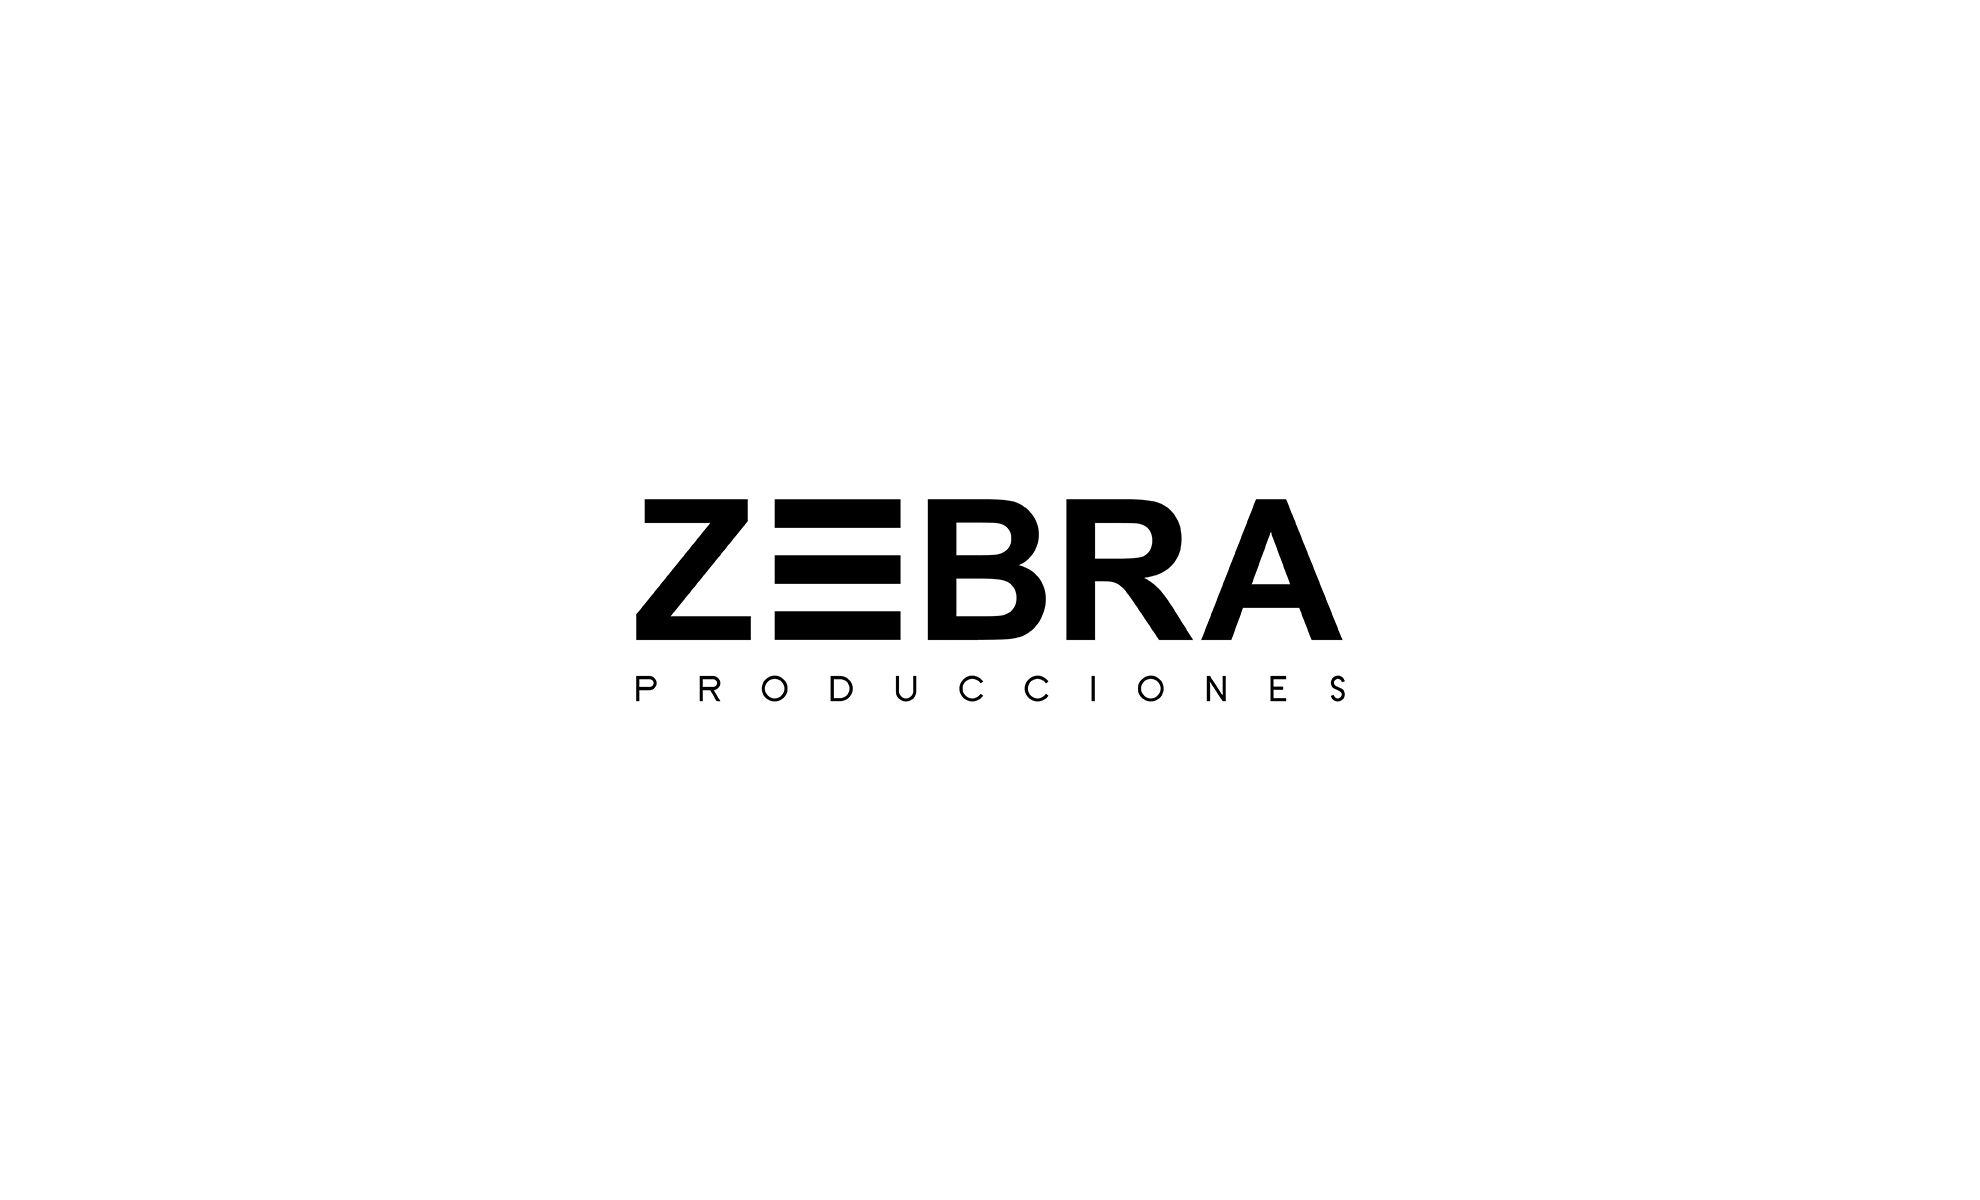 Zebra and Veralia join forces to create a leading content producer in Spain